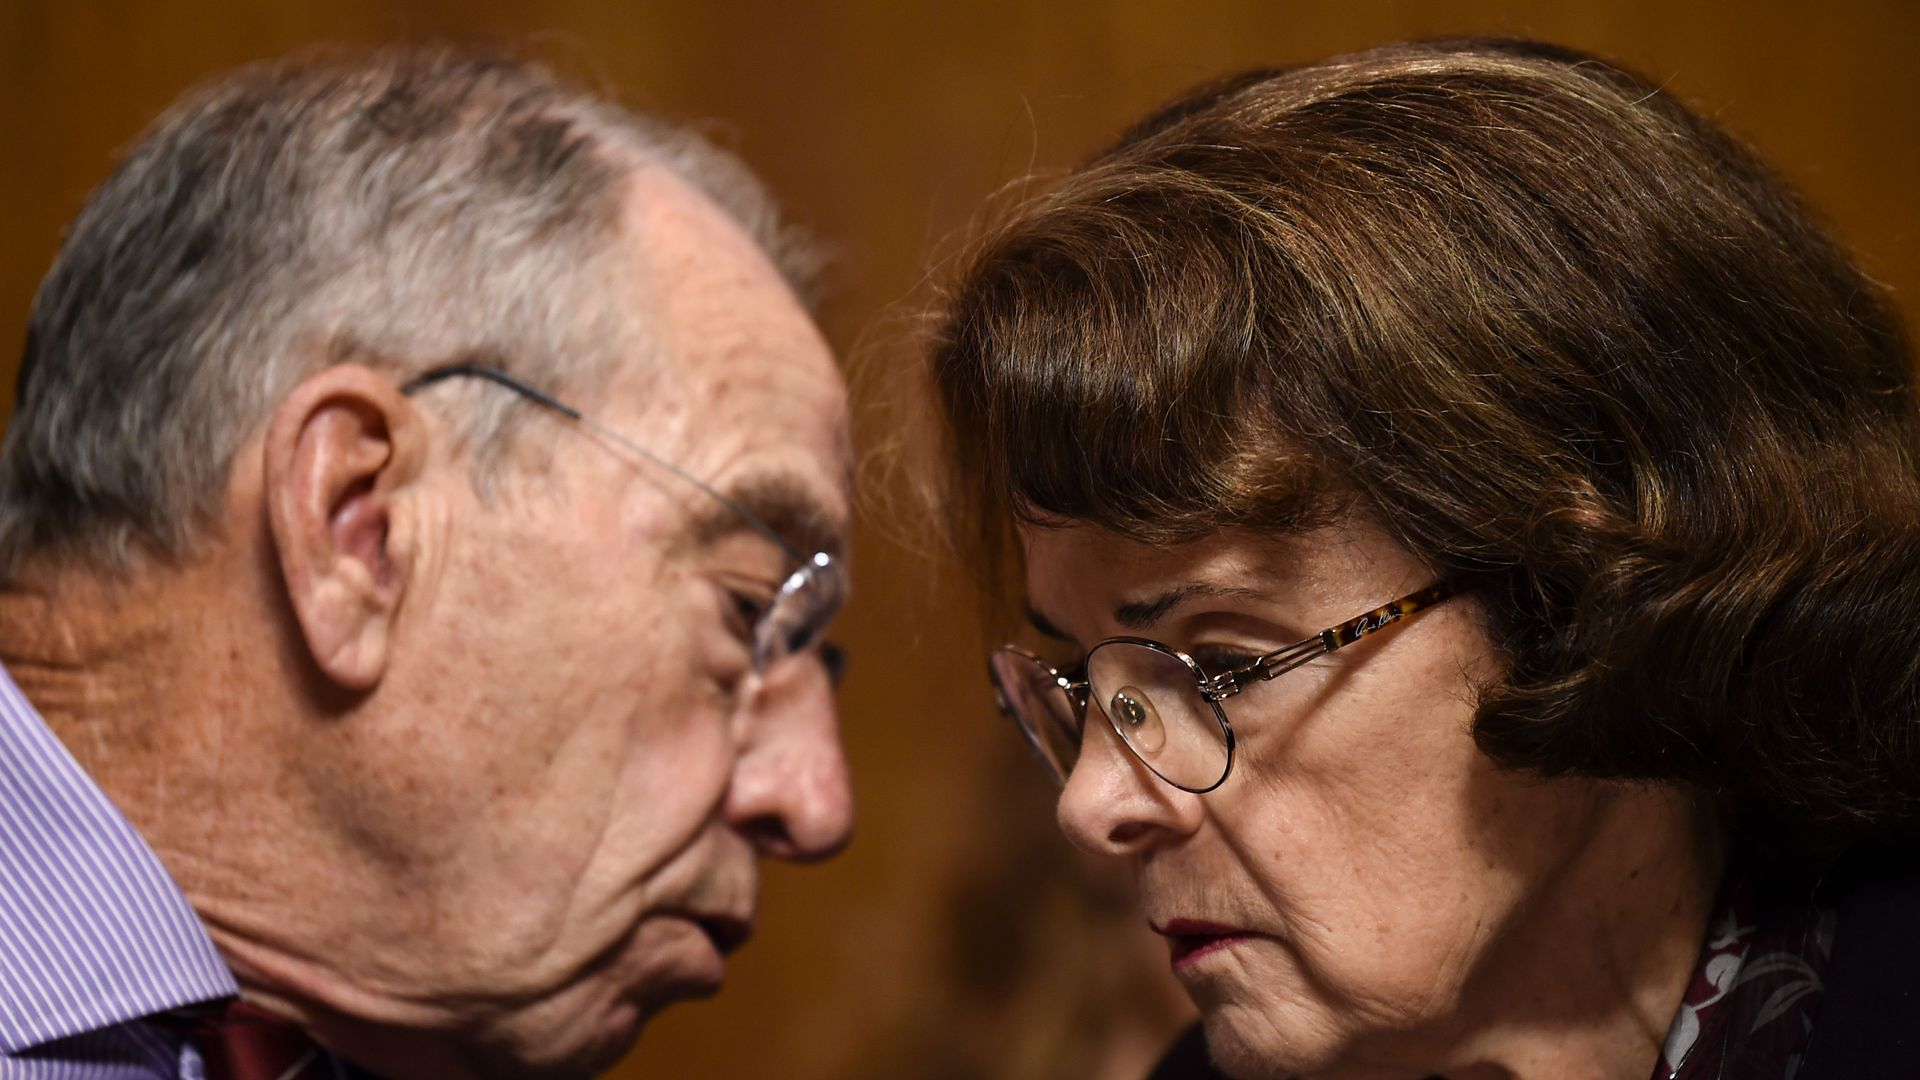 Feinstein and Grassley huddle and talk with bent heads.